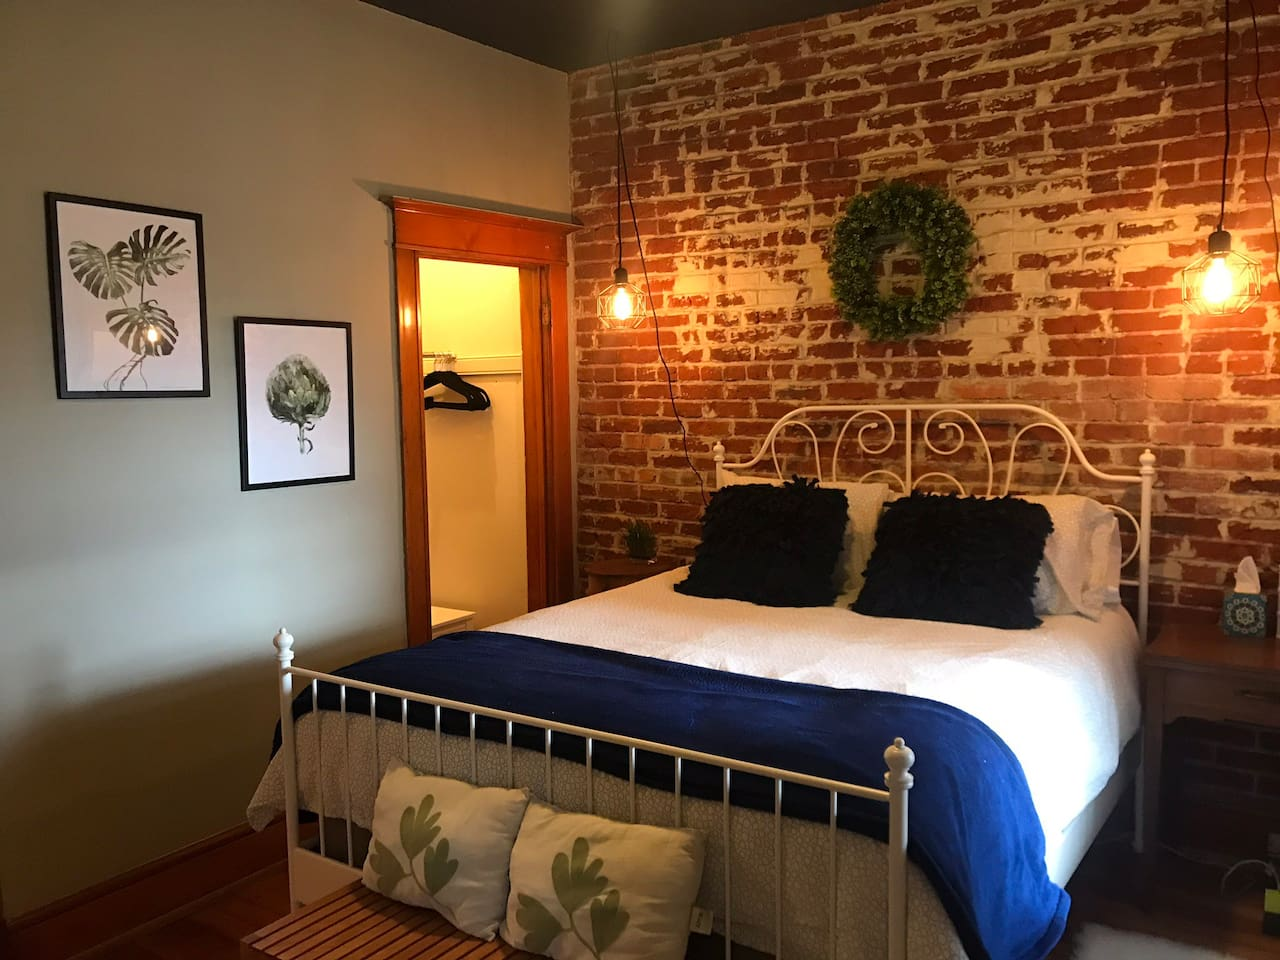 Your private room with organic cotton sheets, cozy blankets and exposed brick.